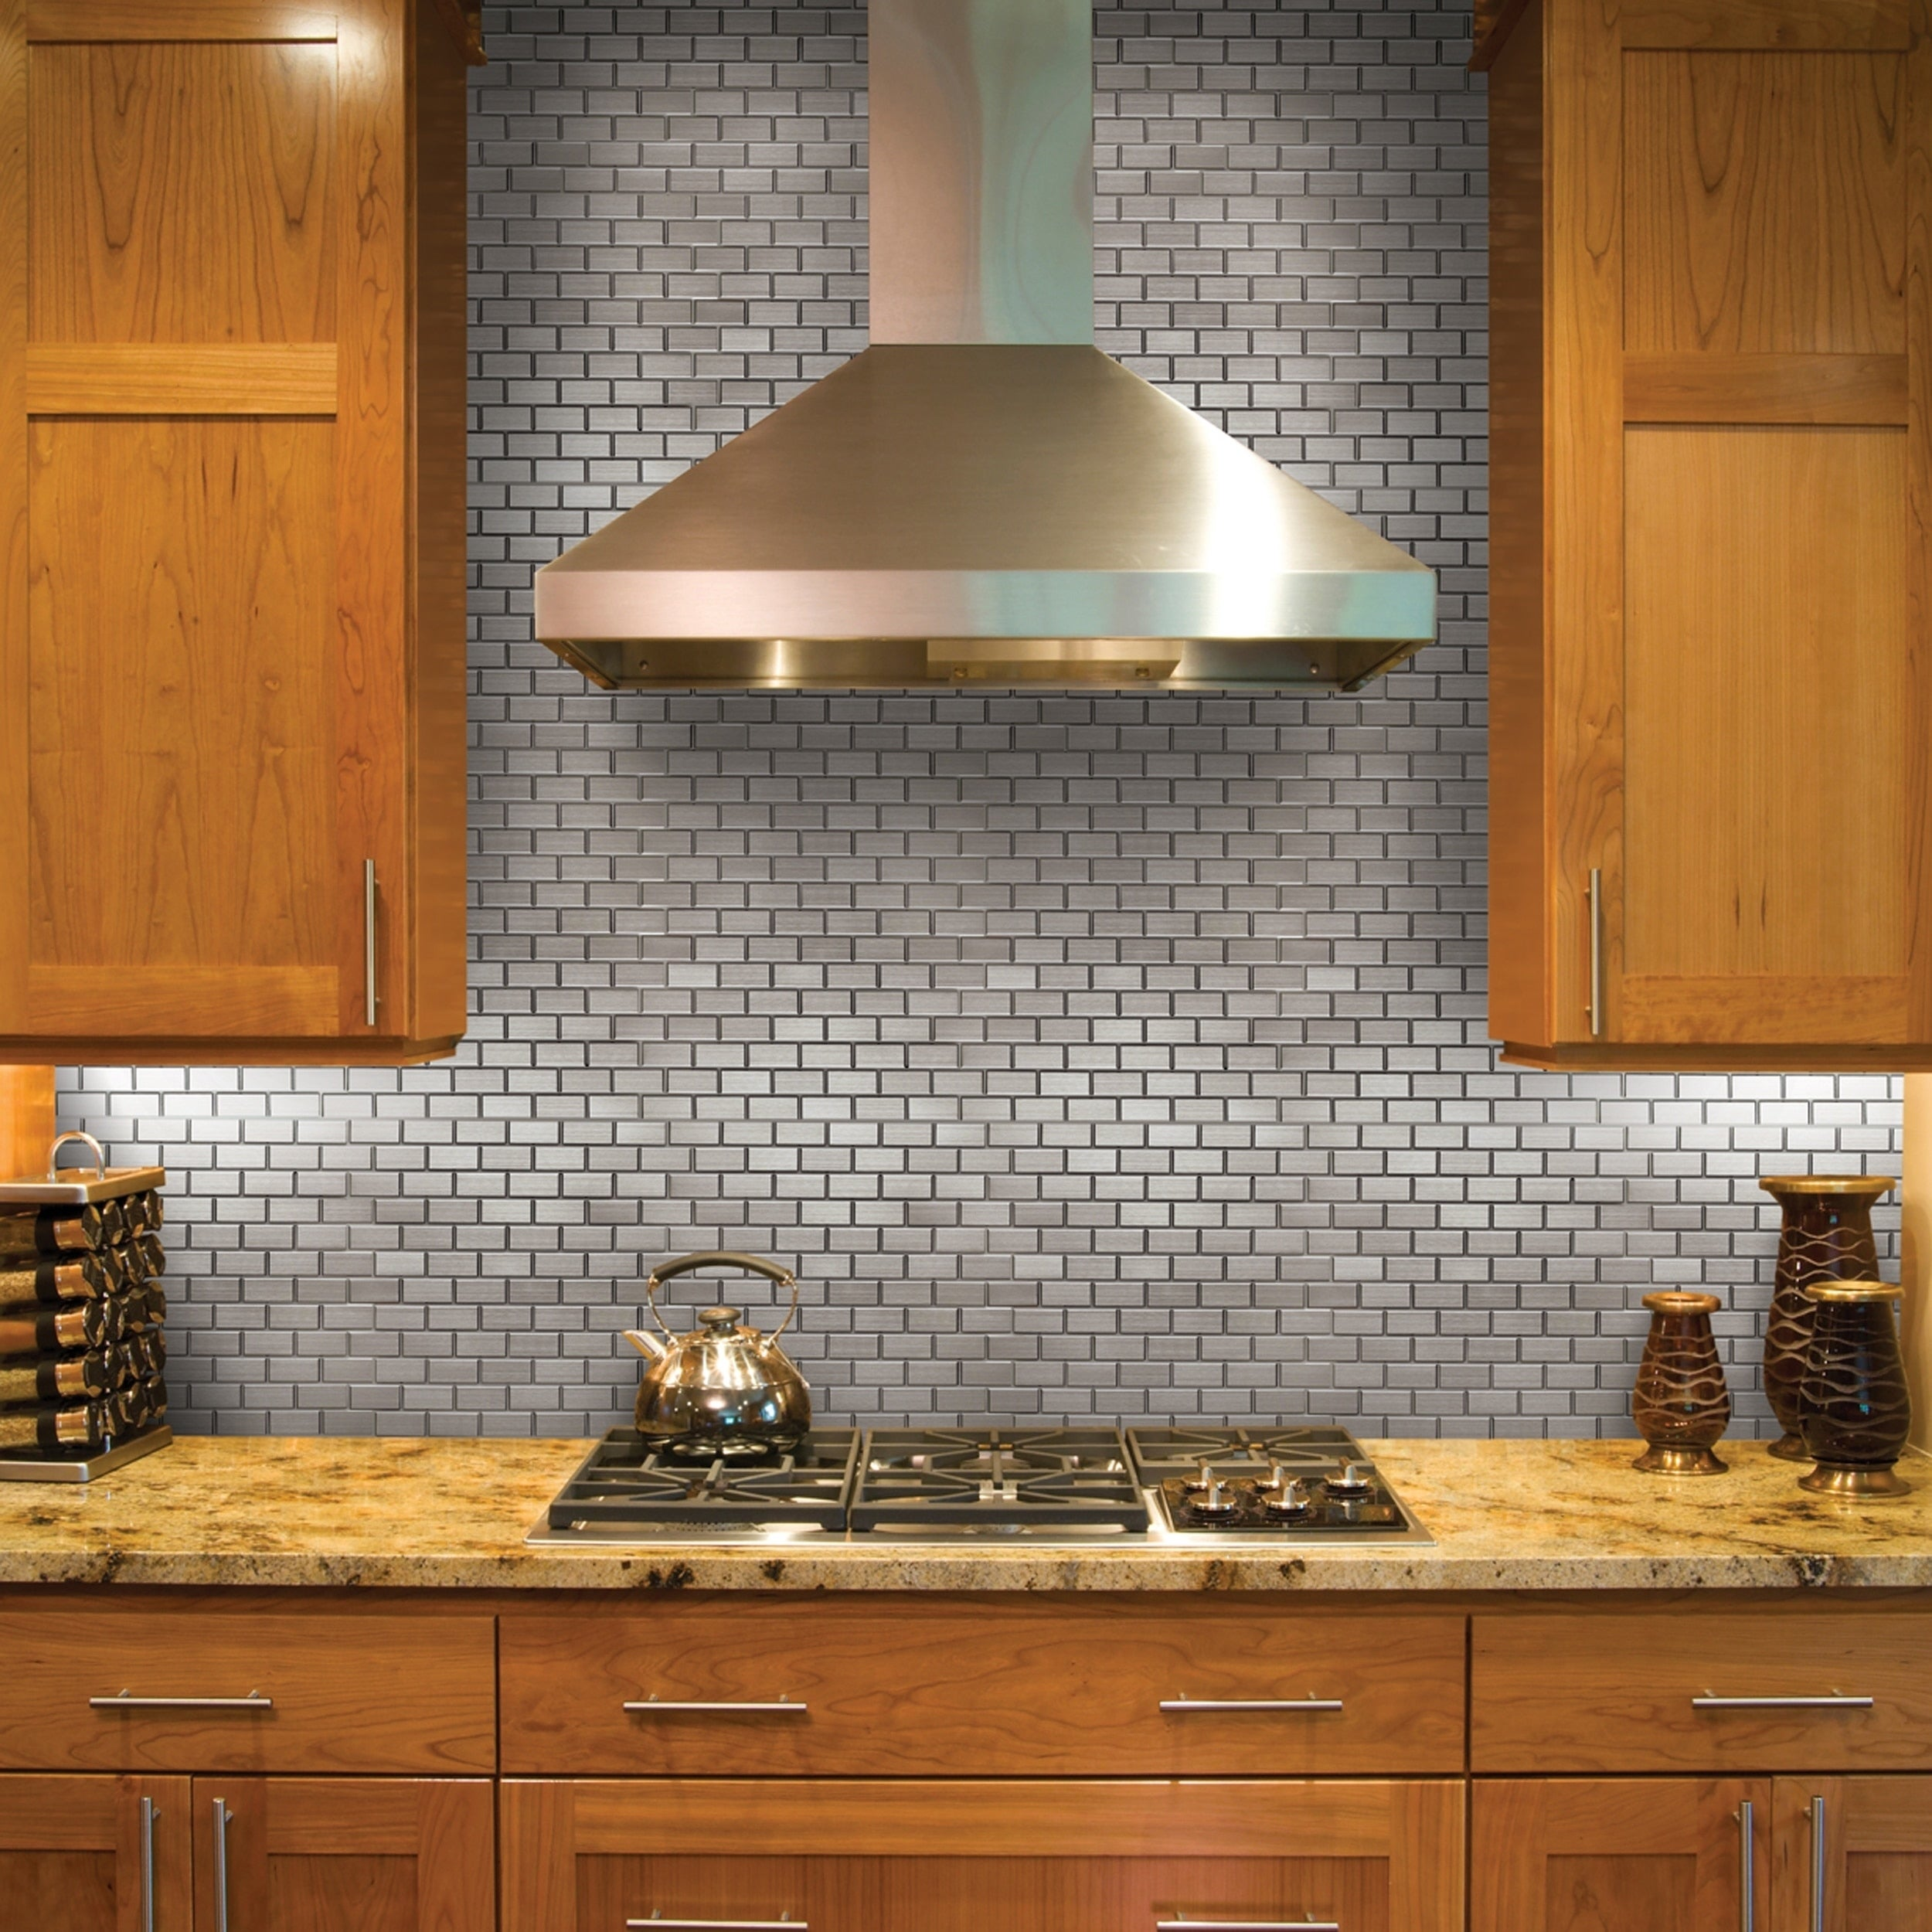 Magnificent 12 X 12 Floor Tile Thick 12X24 Floor Tile Designs Round 16X16 Ceramic Tile 2 X 4 Drop Ceiling Tiles Youthful 2X2 Ceramic Floor Tile Bright3 X 6 Glass Subway Tile SomerTile 11.75x11.75 Inch Chromium Subway Stainless Steel Over ..